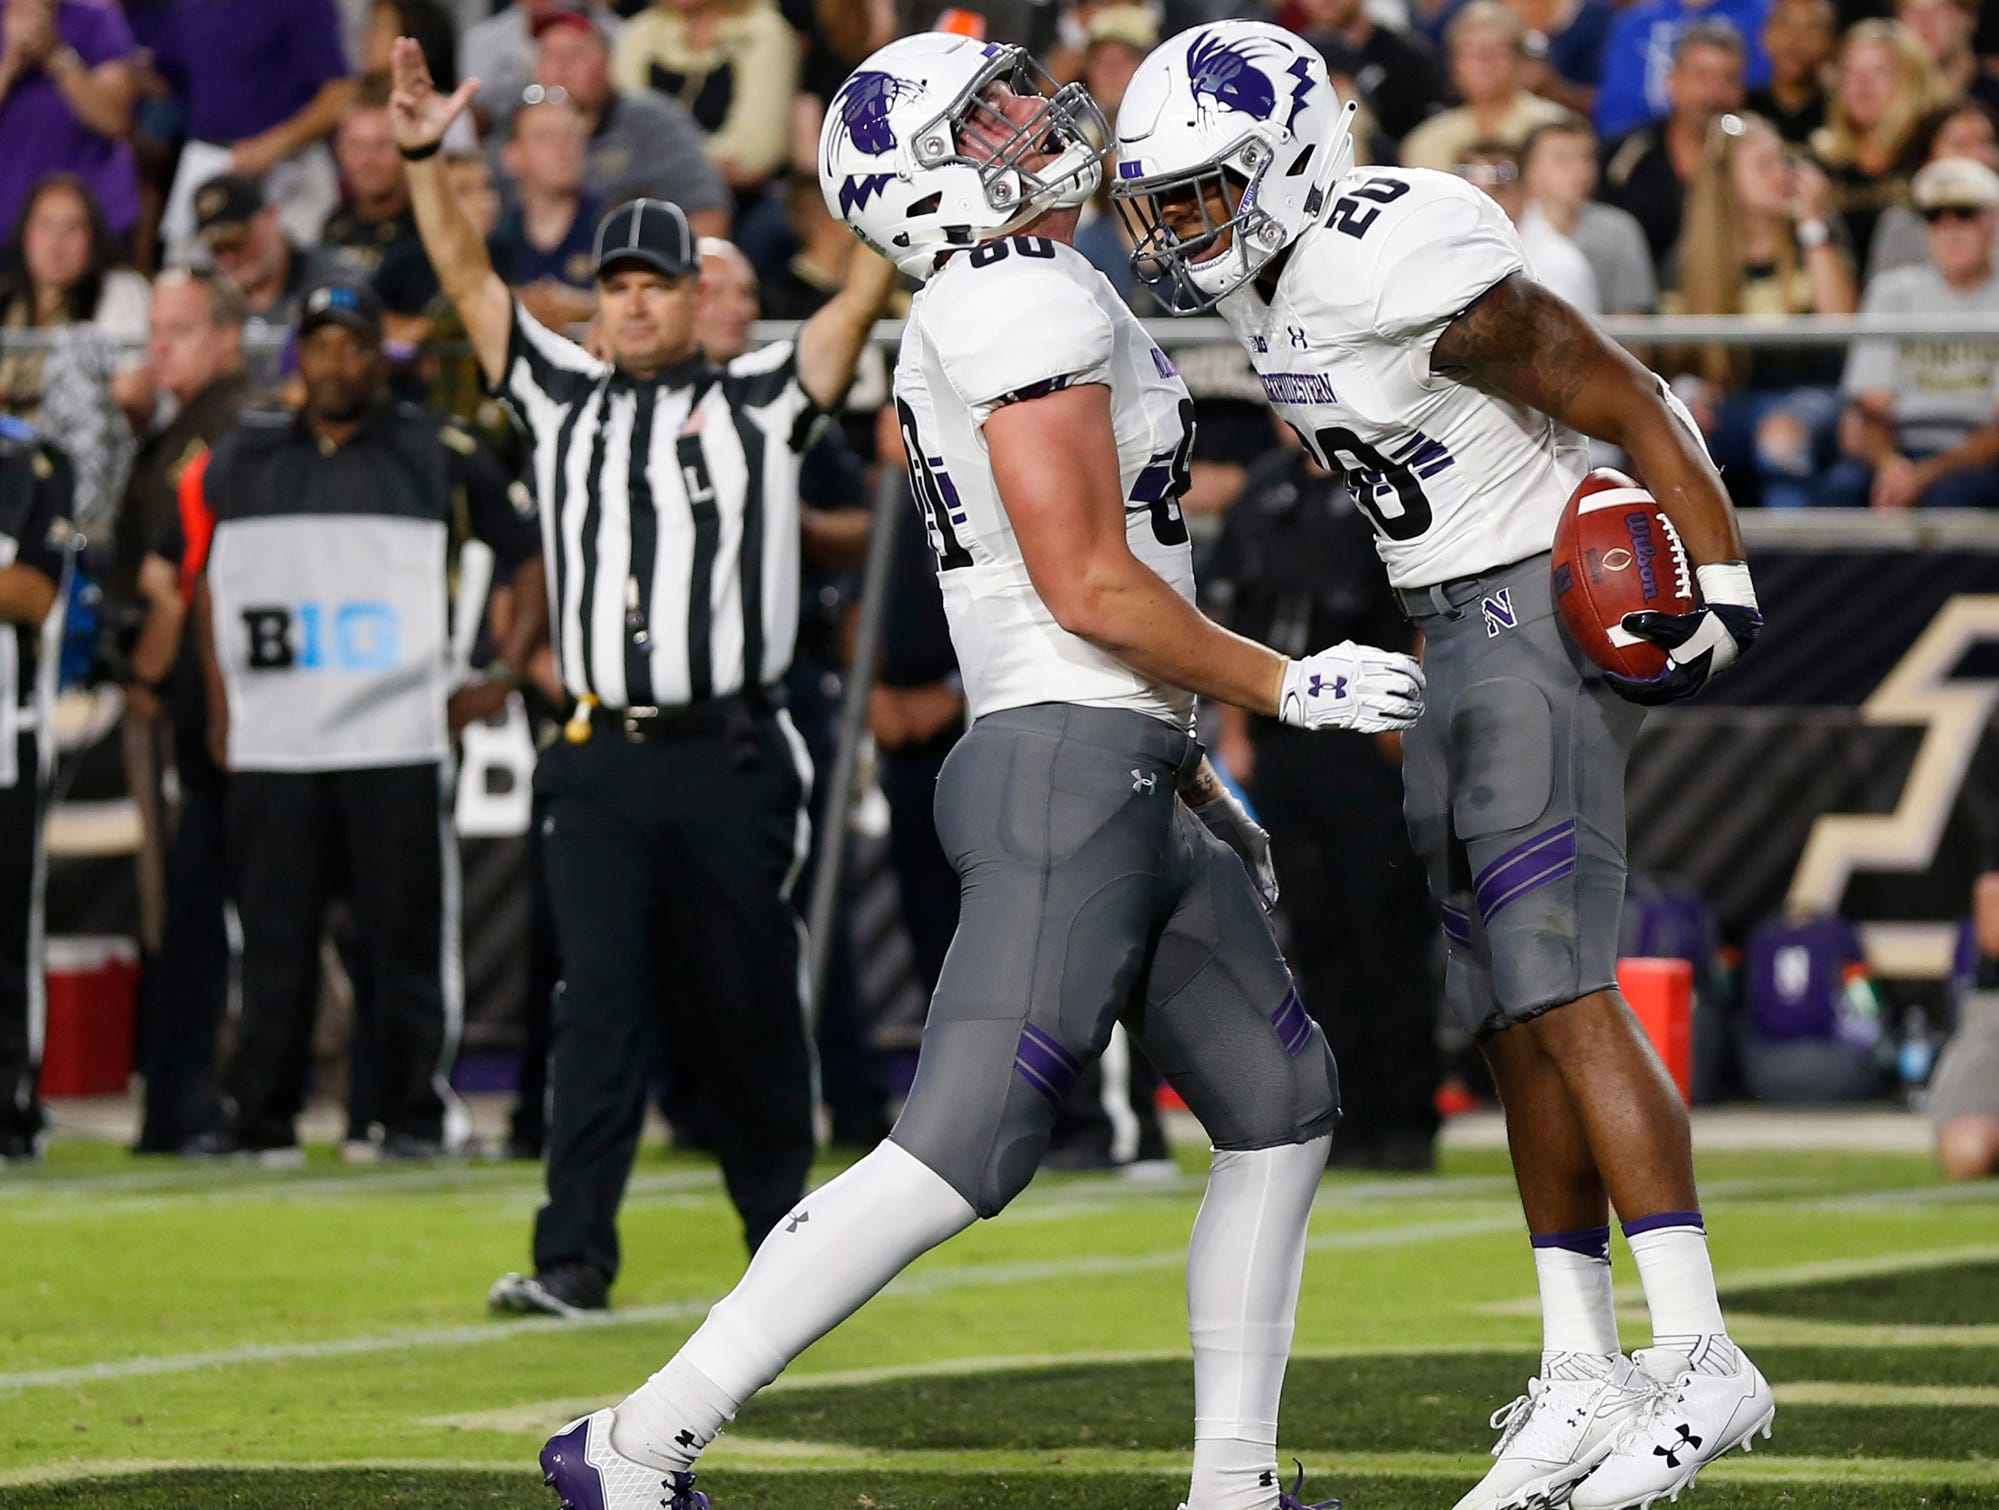 Jeremy Larkin of Northwestern celebrates with teammate Trey Pugh after his rushing touchdown against Purdue at 5:34 in the first quarter Thursday, August 30, 2018, in West Lafayette. Northwestern lead 14-0 after Larkin's score.